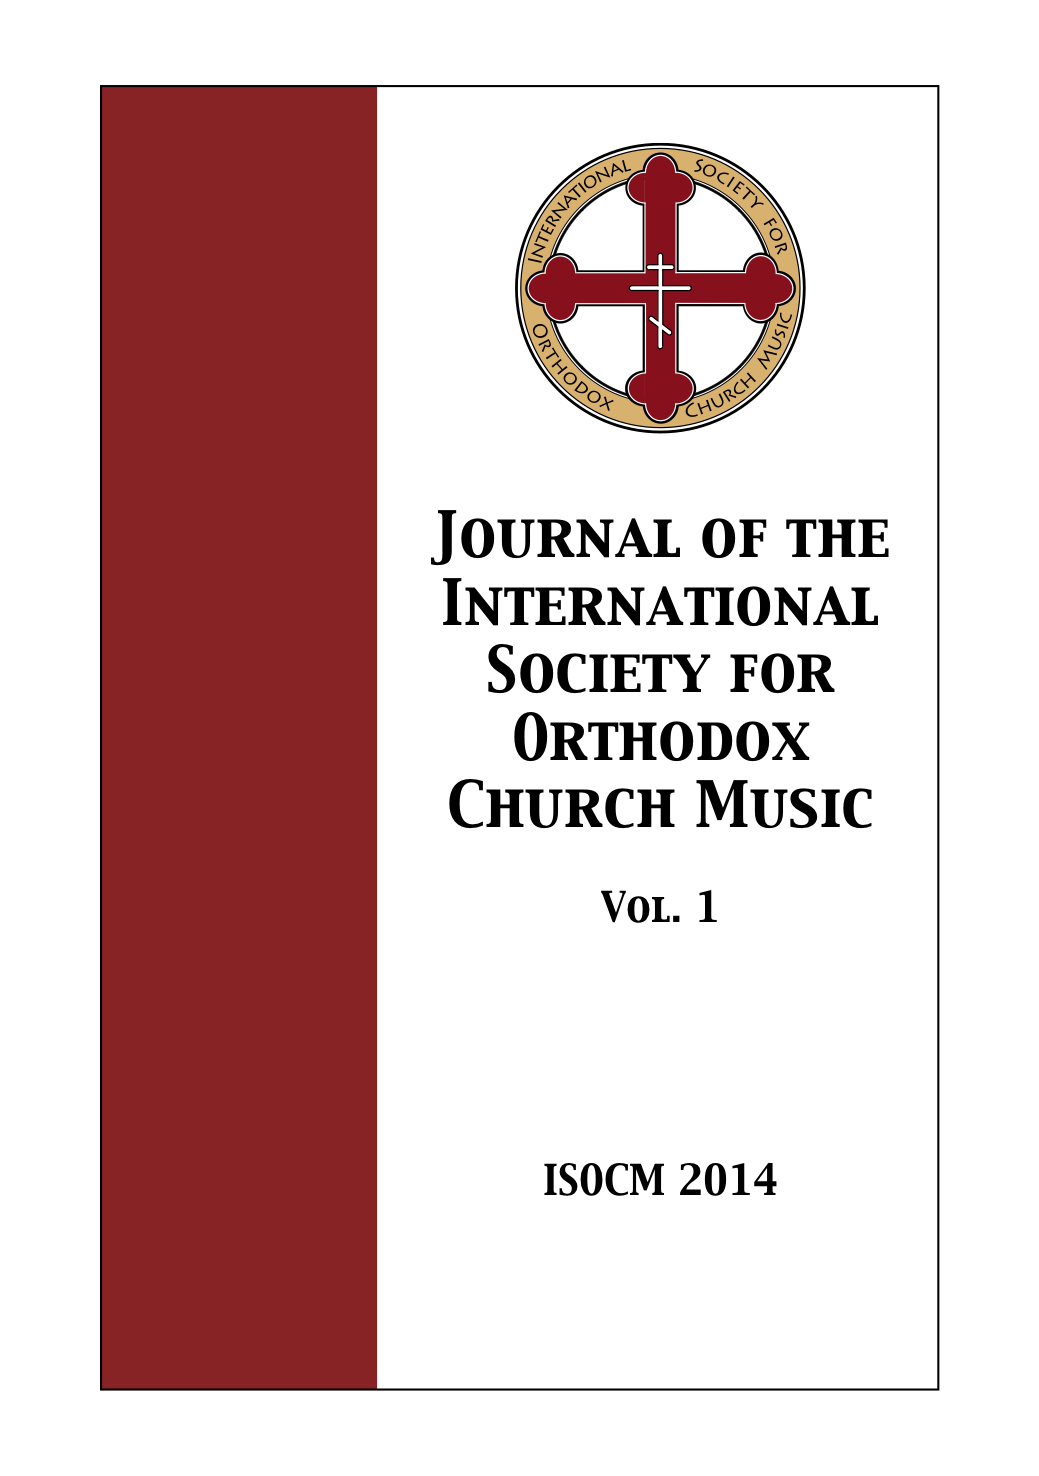 Cover of Journal of ISOCM Vol. 1